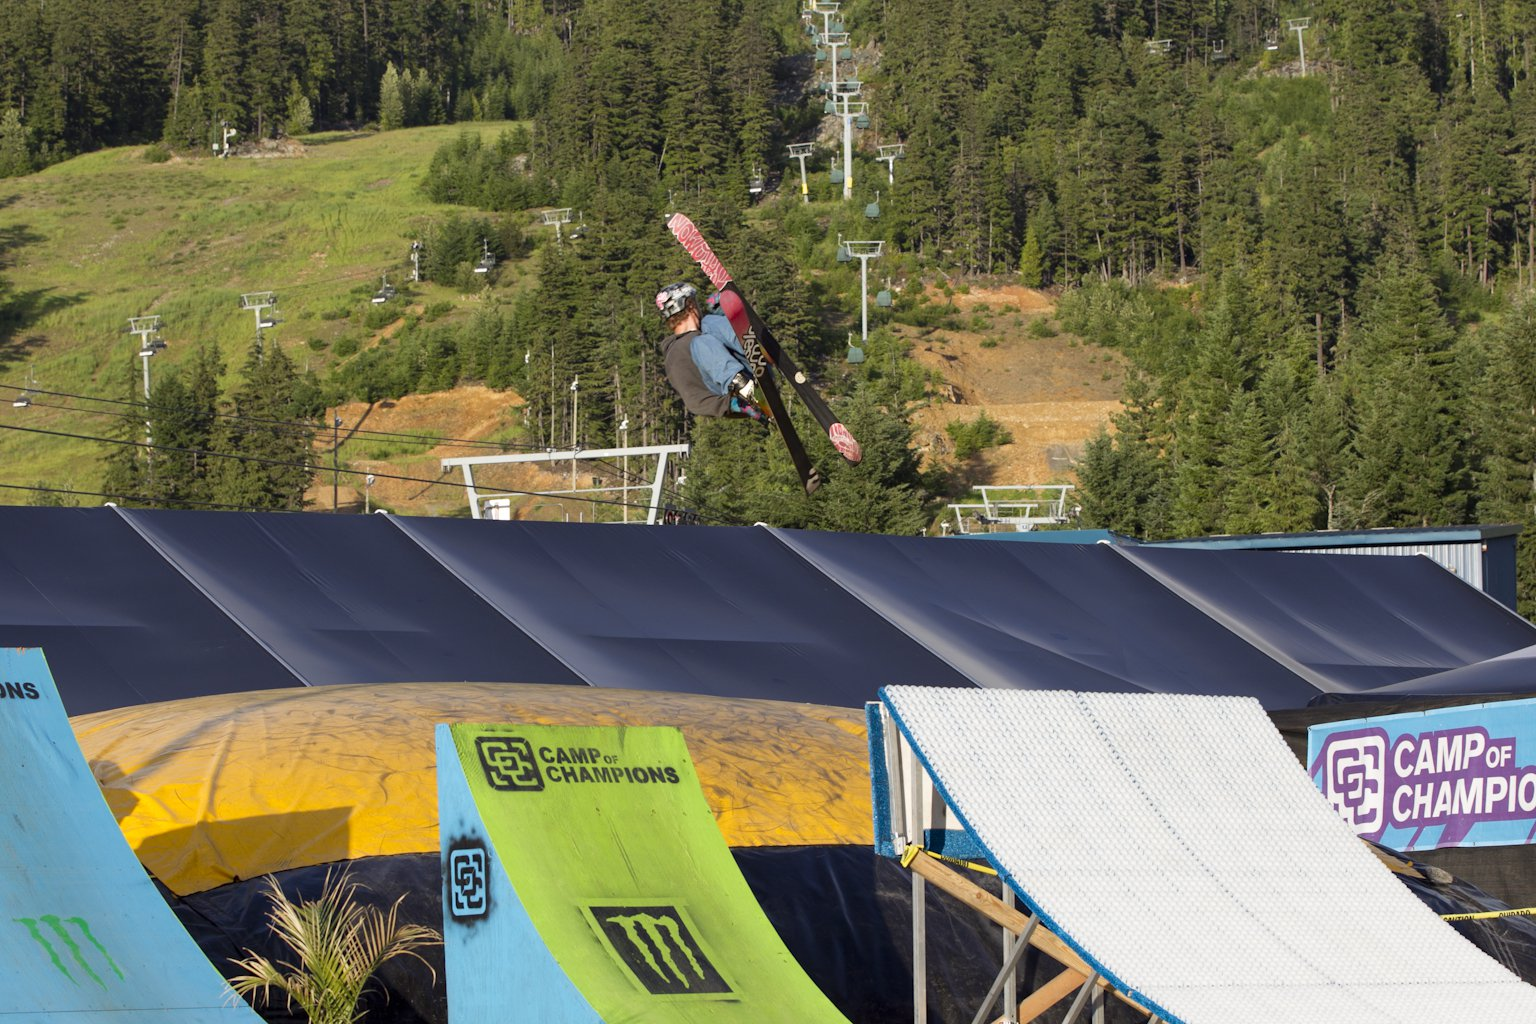 The Camp of Champions - The Launcher - 10 of 15